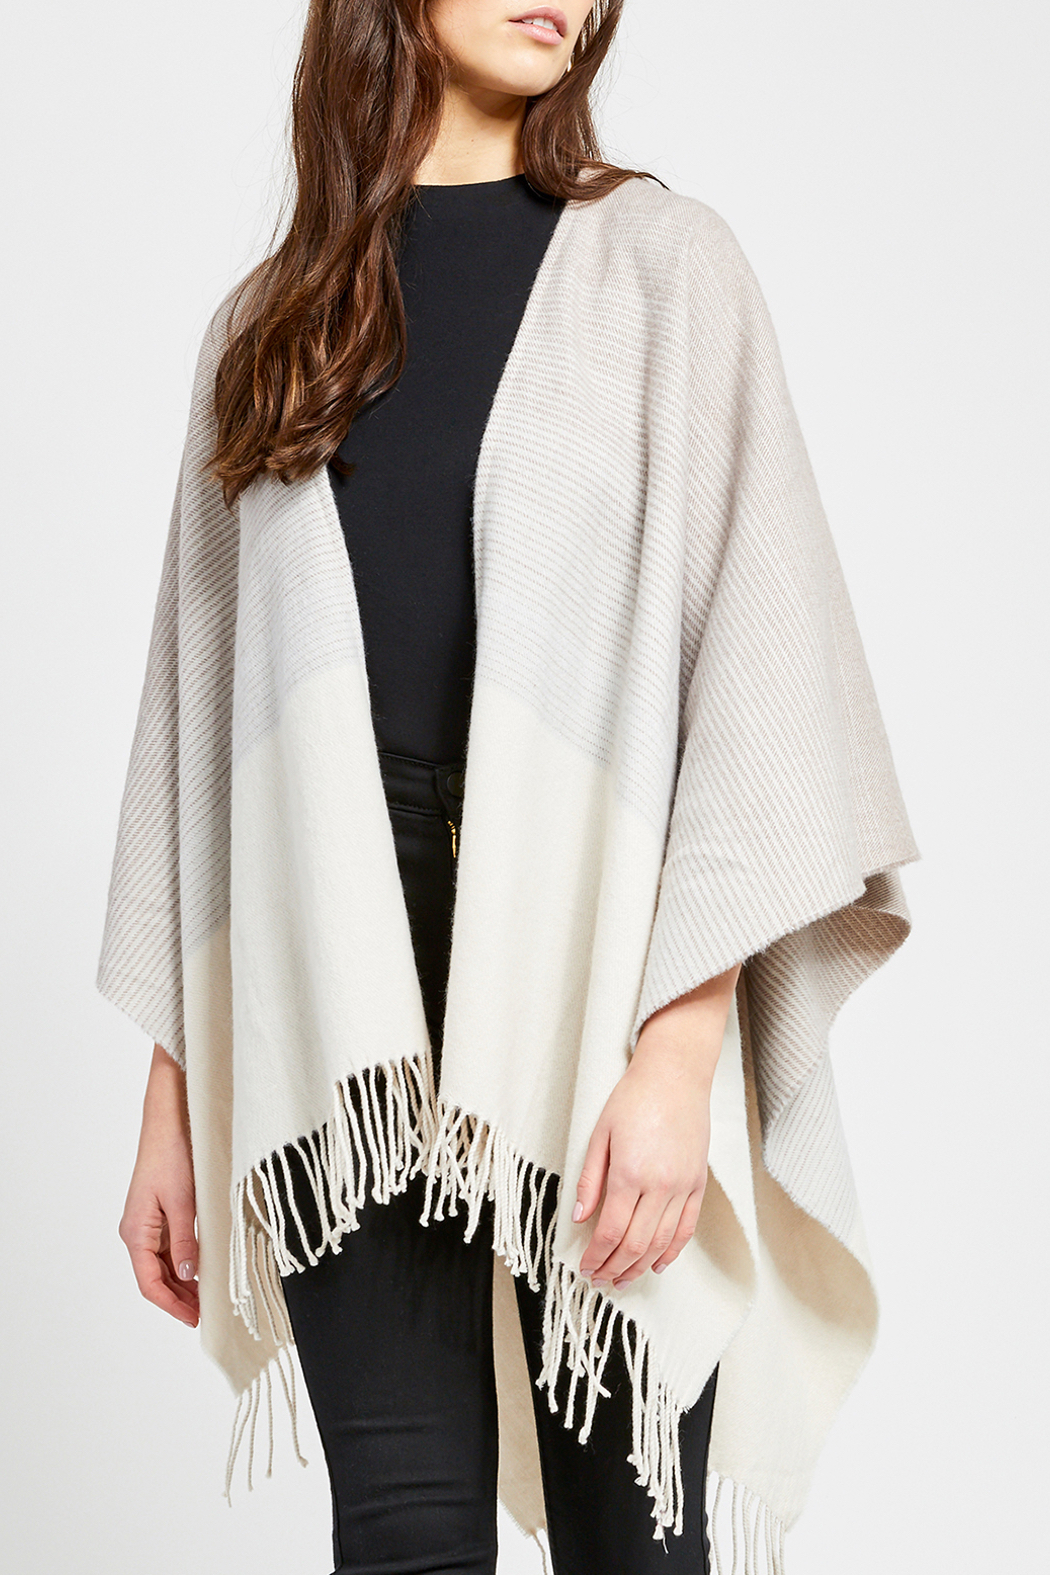 Gentle Fawn Loretto Knot Kimono Shawl - Front Cropped Image